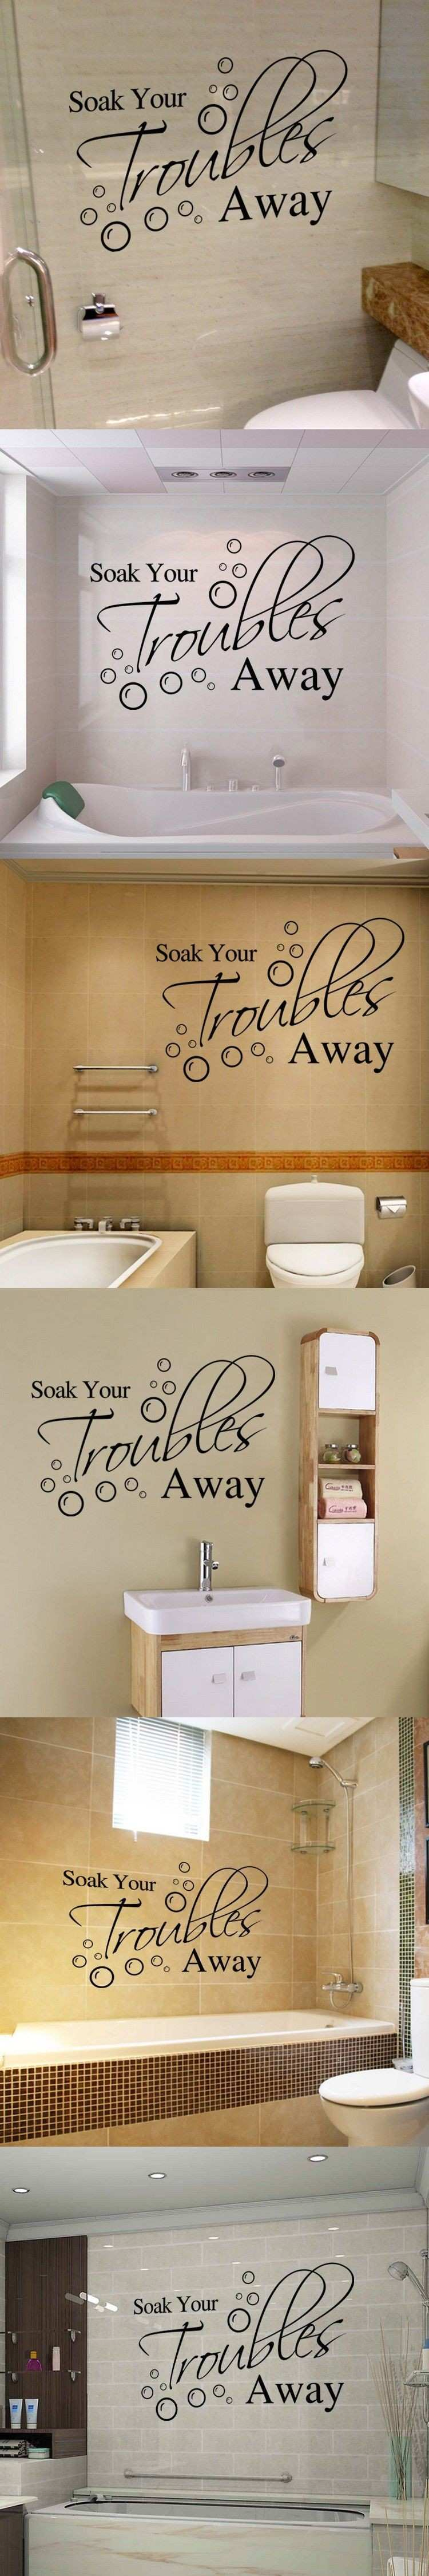 aw9376 Change your Mood Inspirational Mirror Decal Motivational